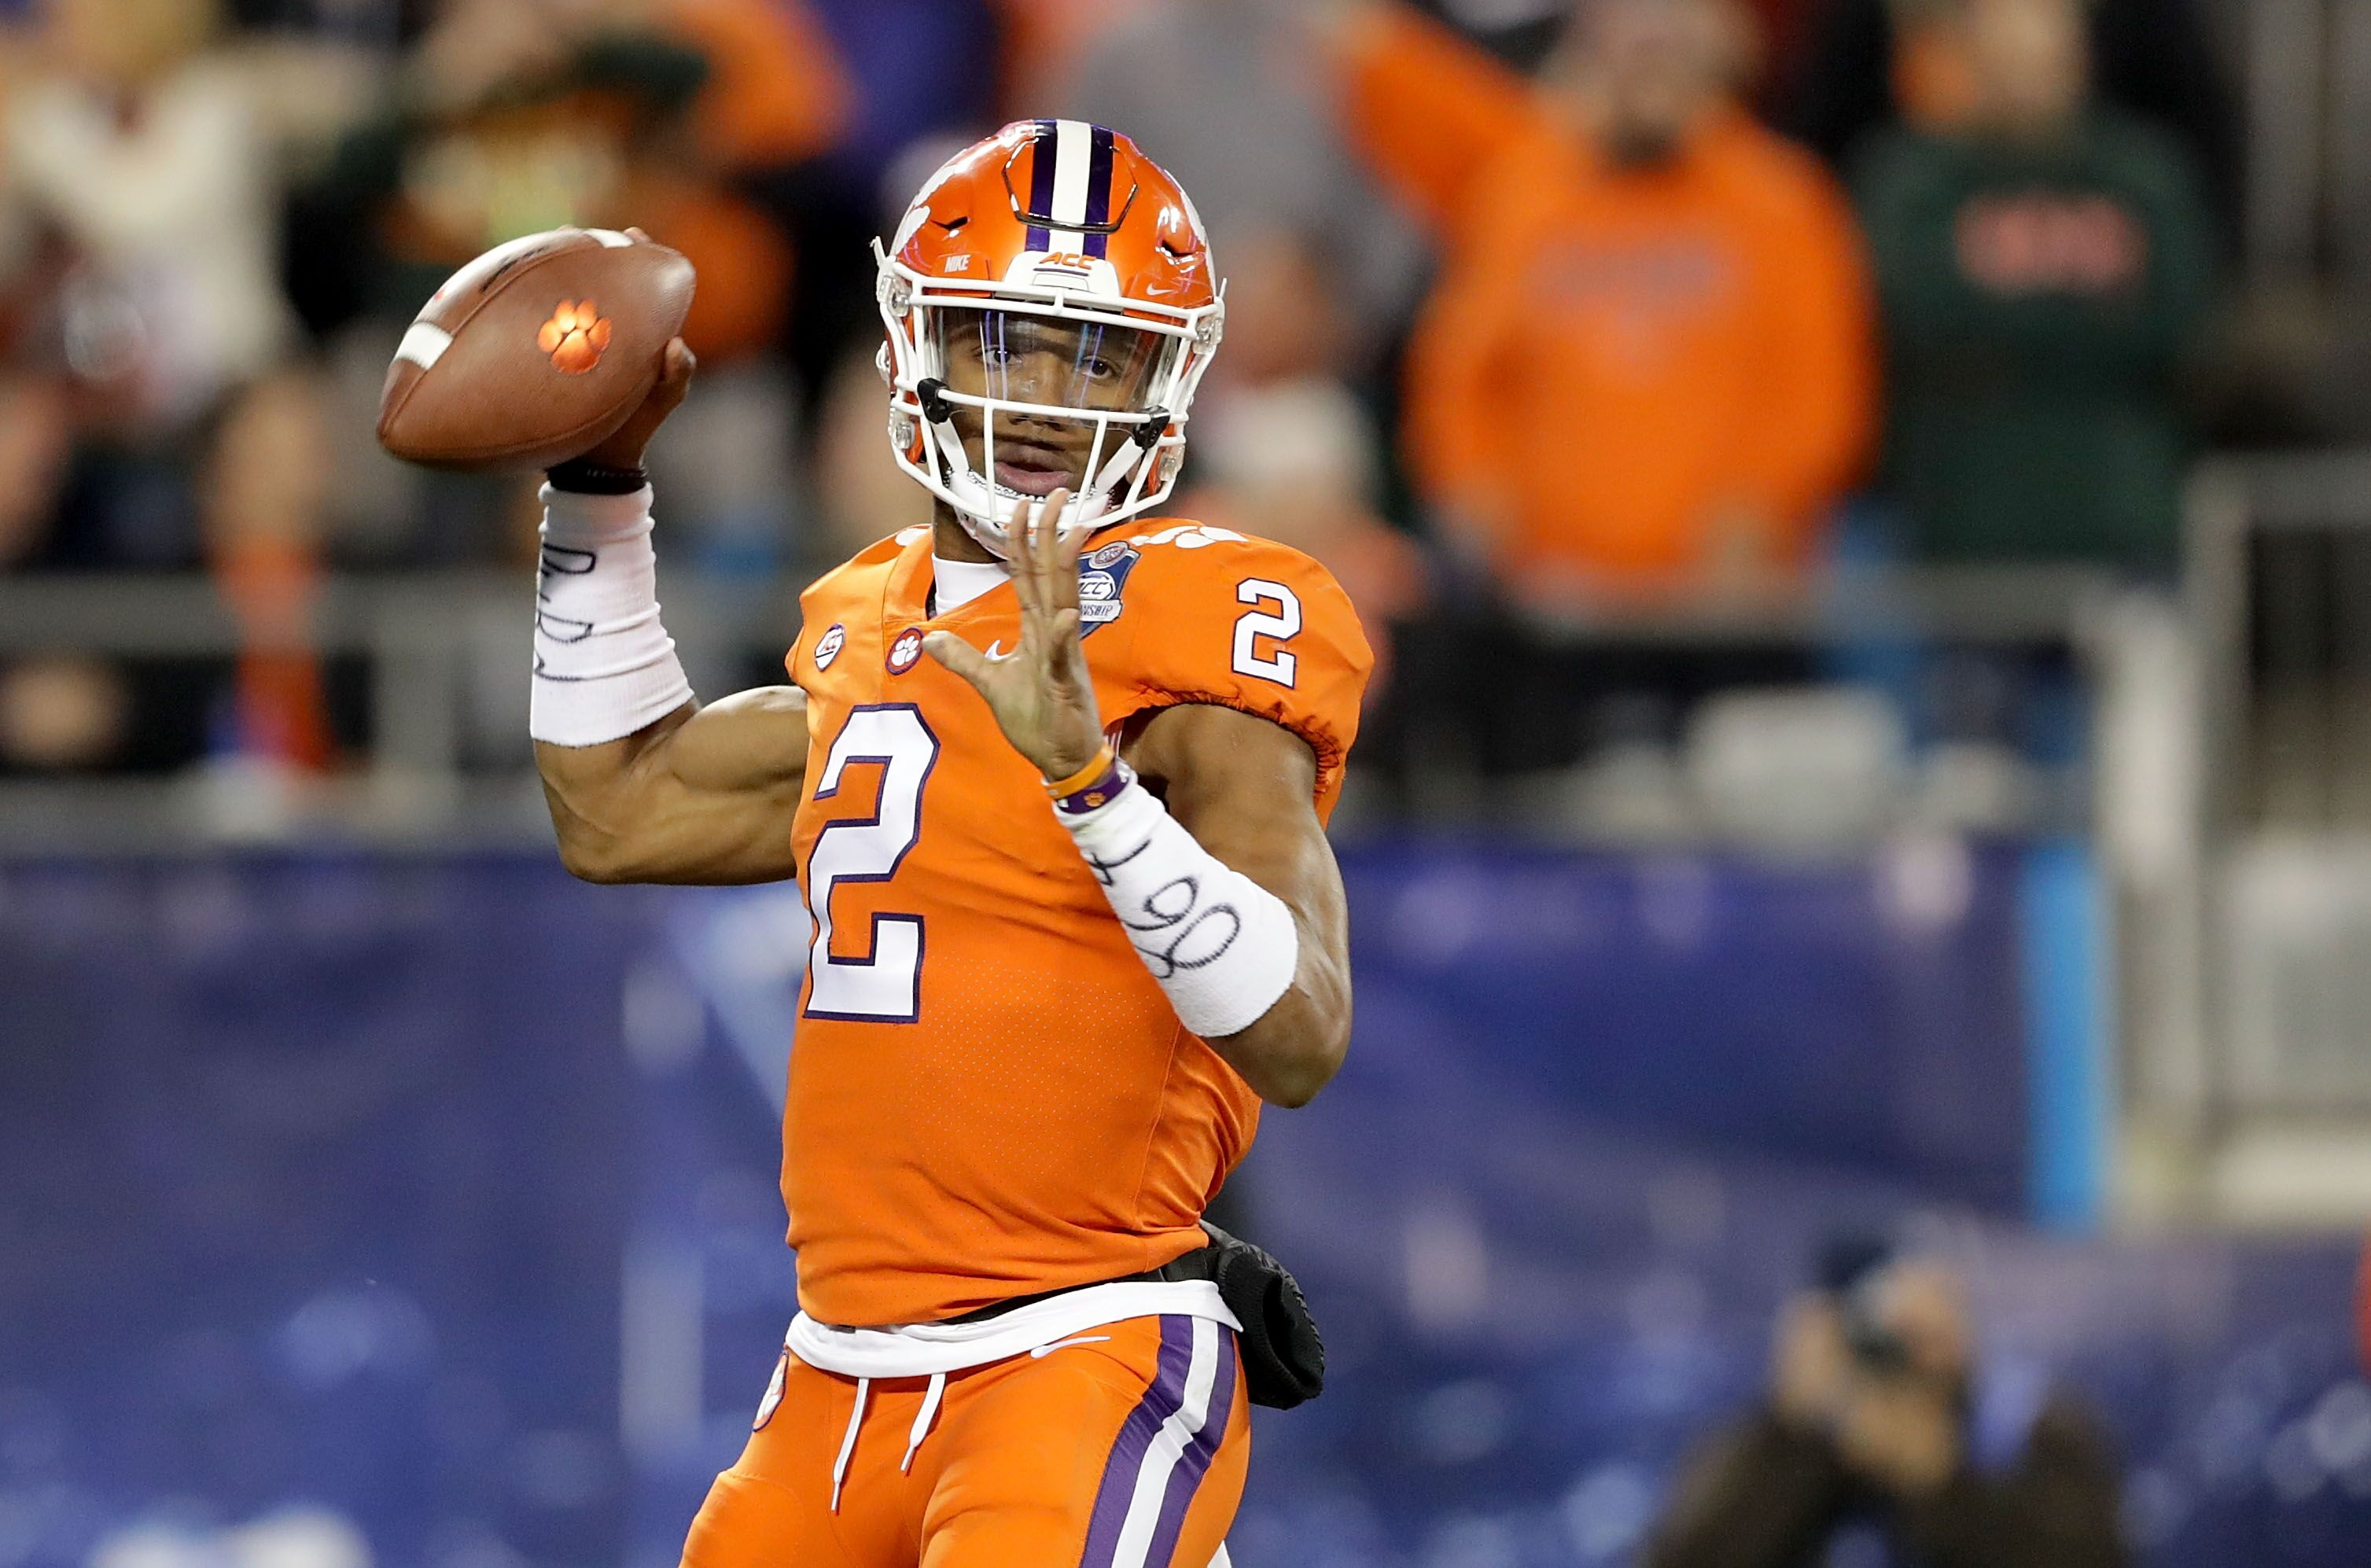 Tigers quarterback Kelly Bryant couldnt help but throw some shade the Hurricanes way after scoring a touchdown during the blowout in the making